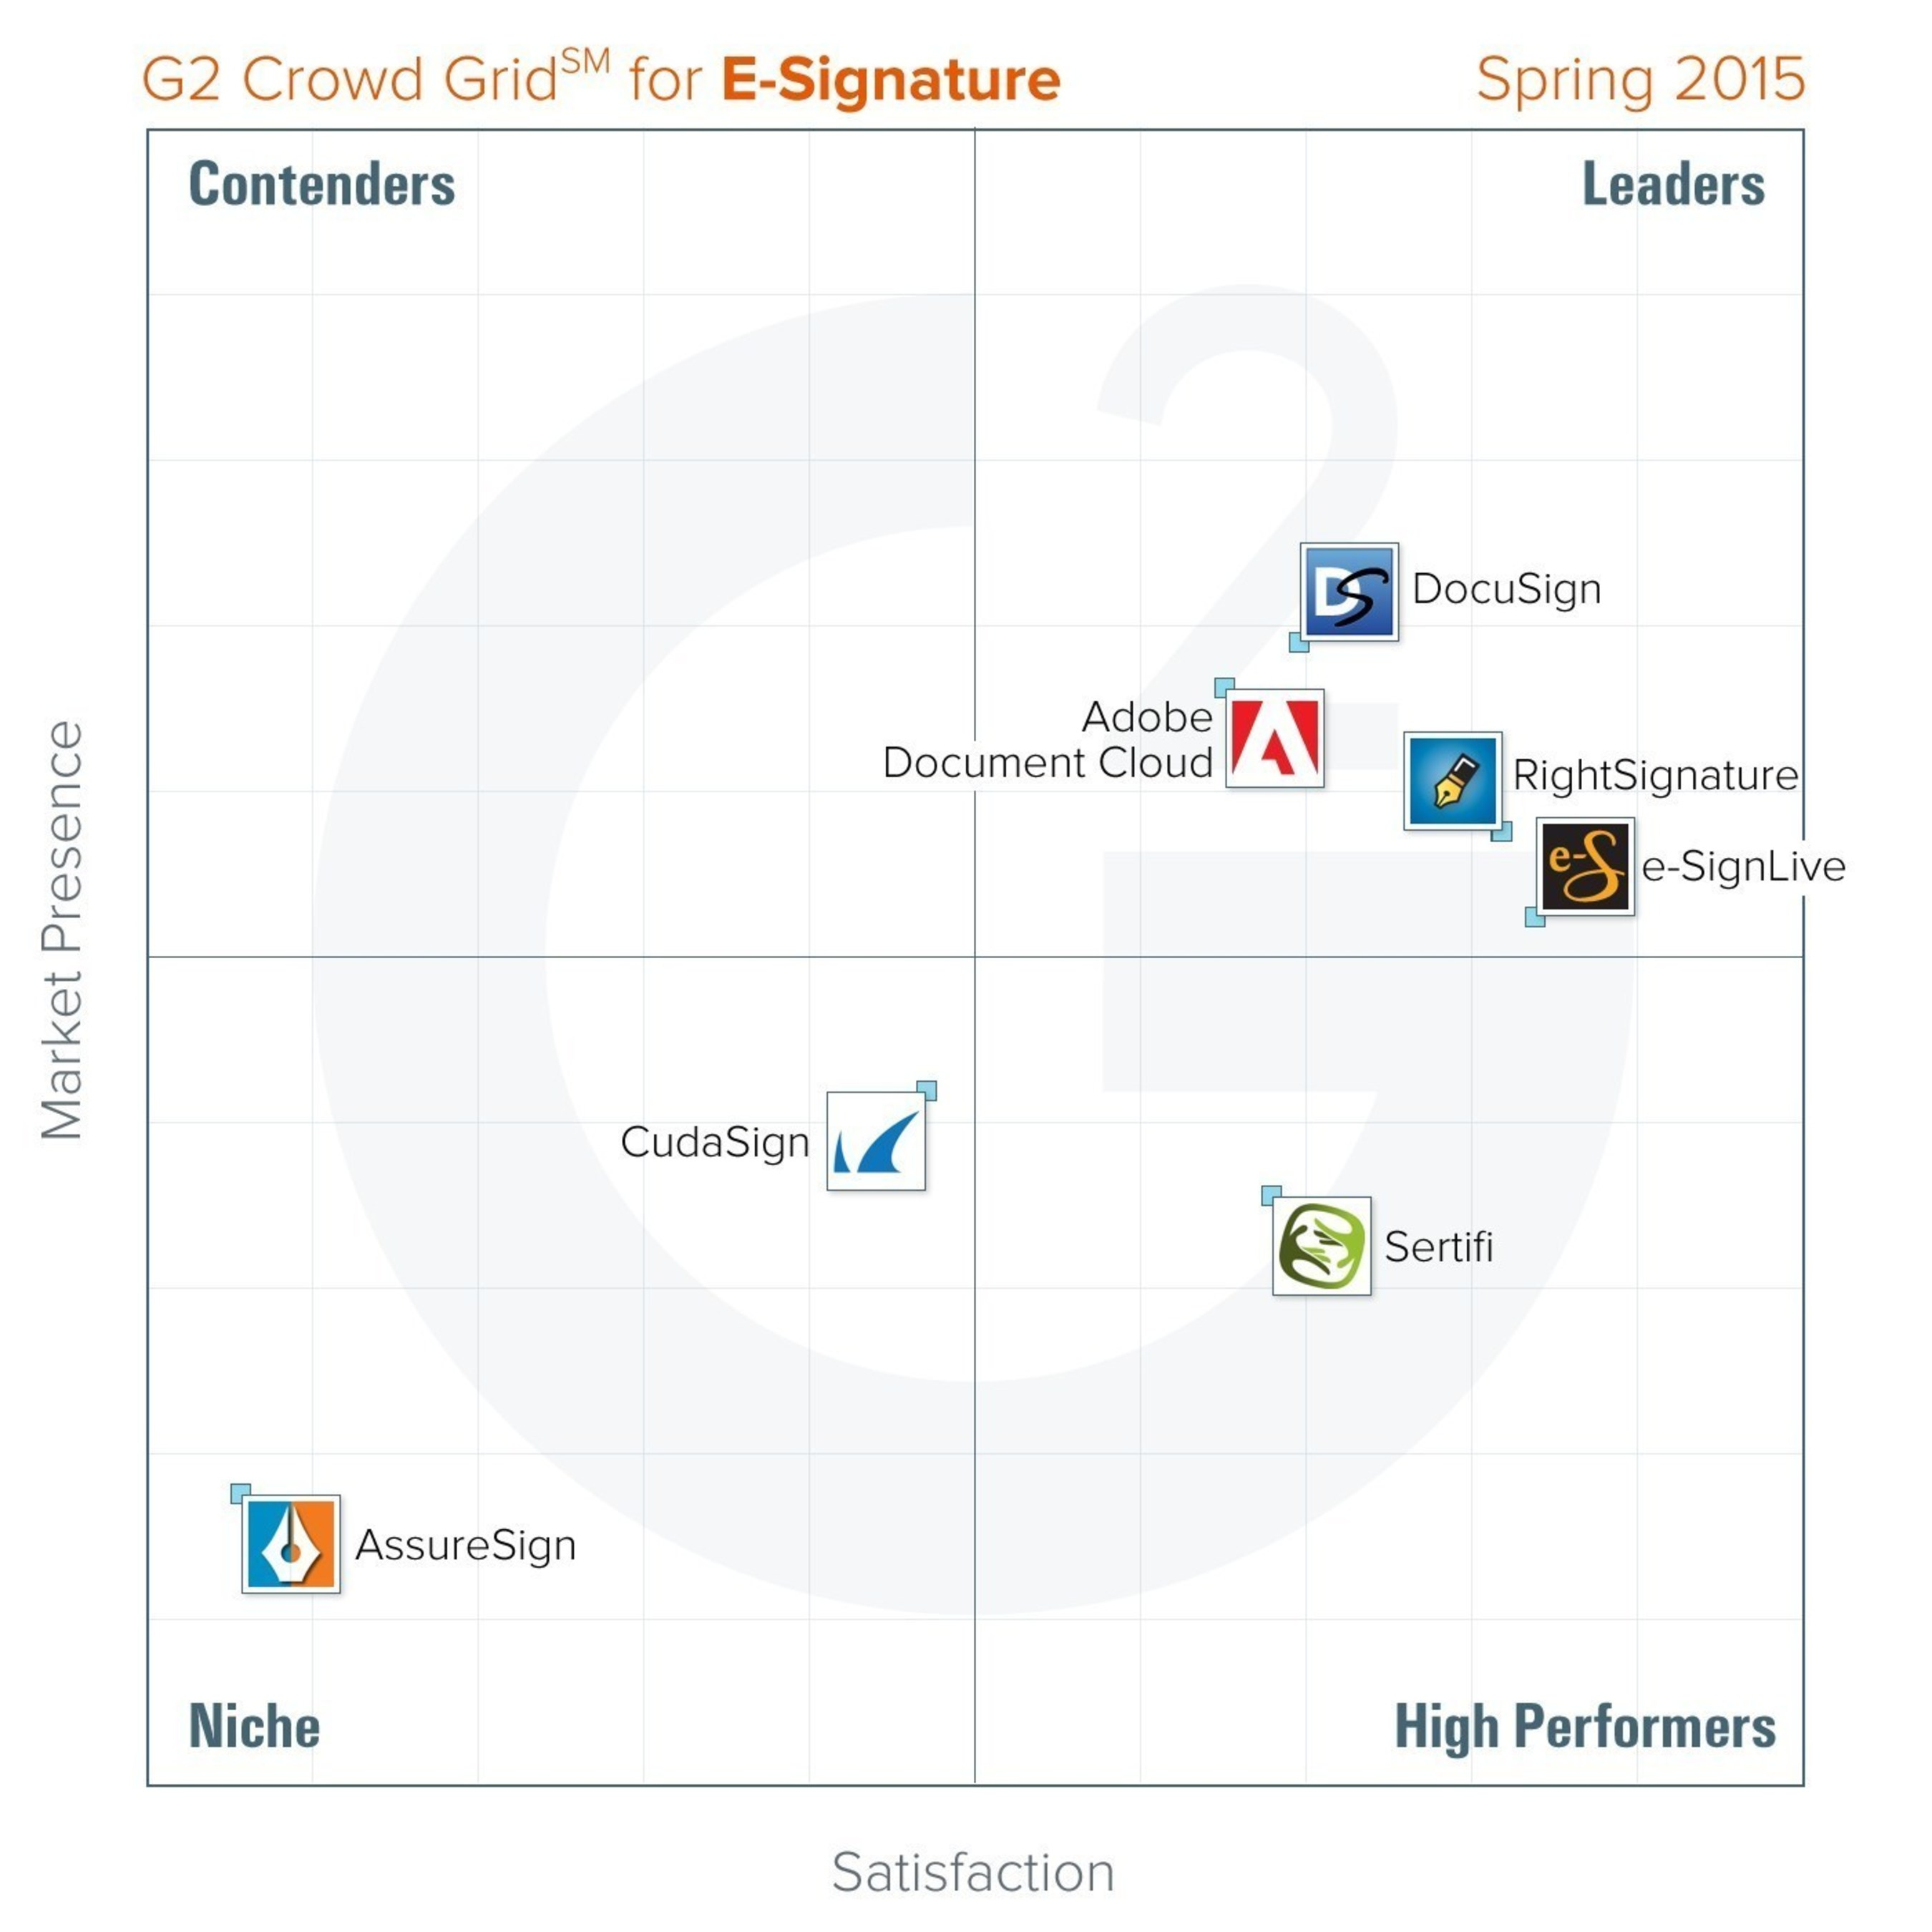 Best e-Signature Software - Spring 2015 - G2 Crowd Grid